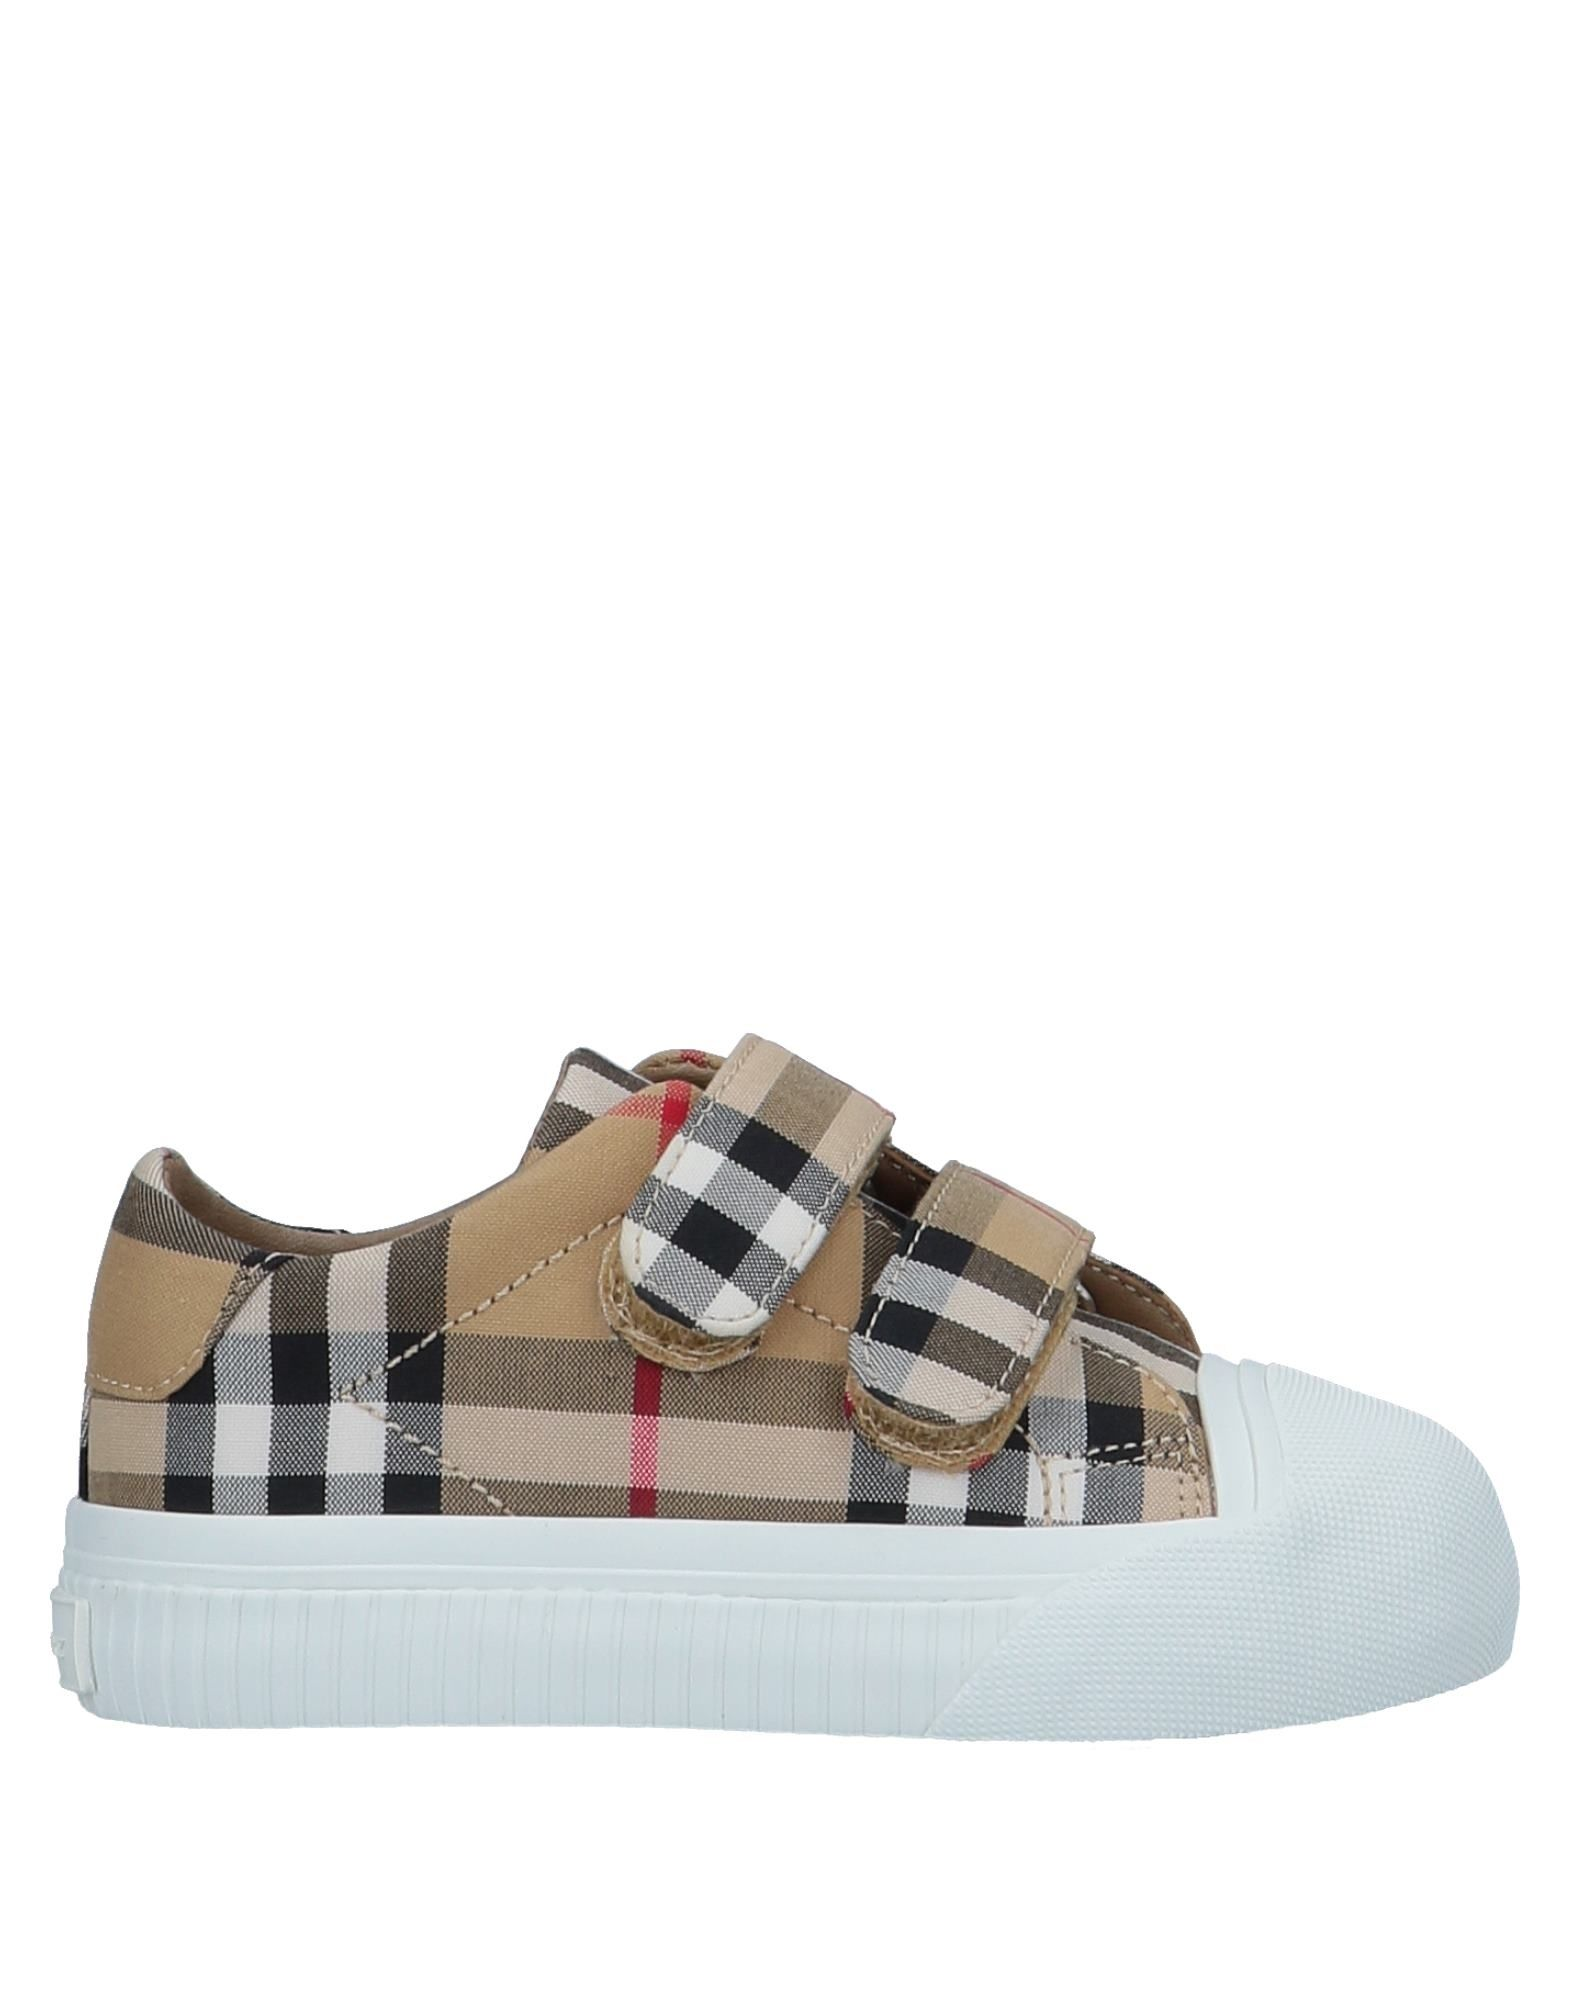 84e4aeae7ec Burberry Sneakers Girl 3-8 years online on YOOX United States